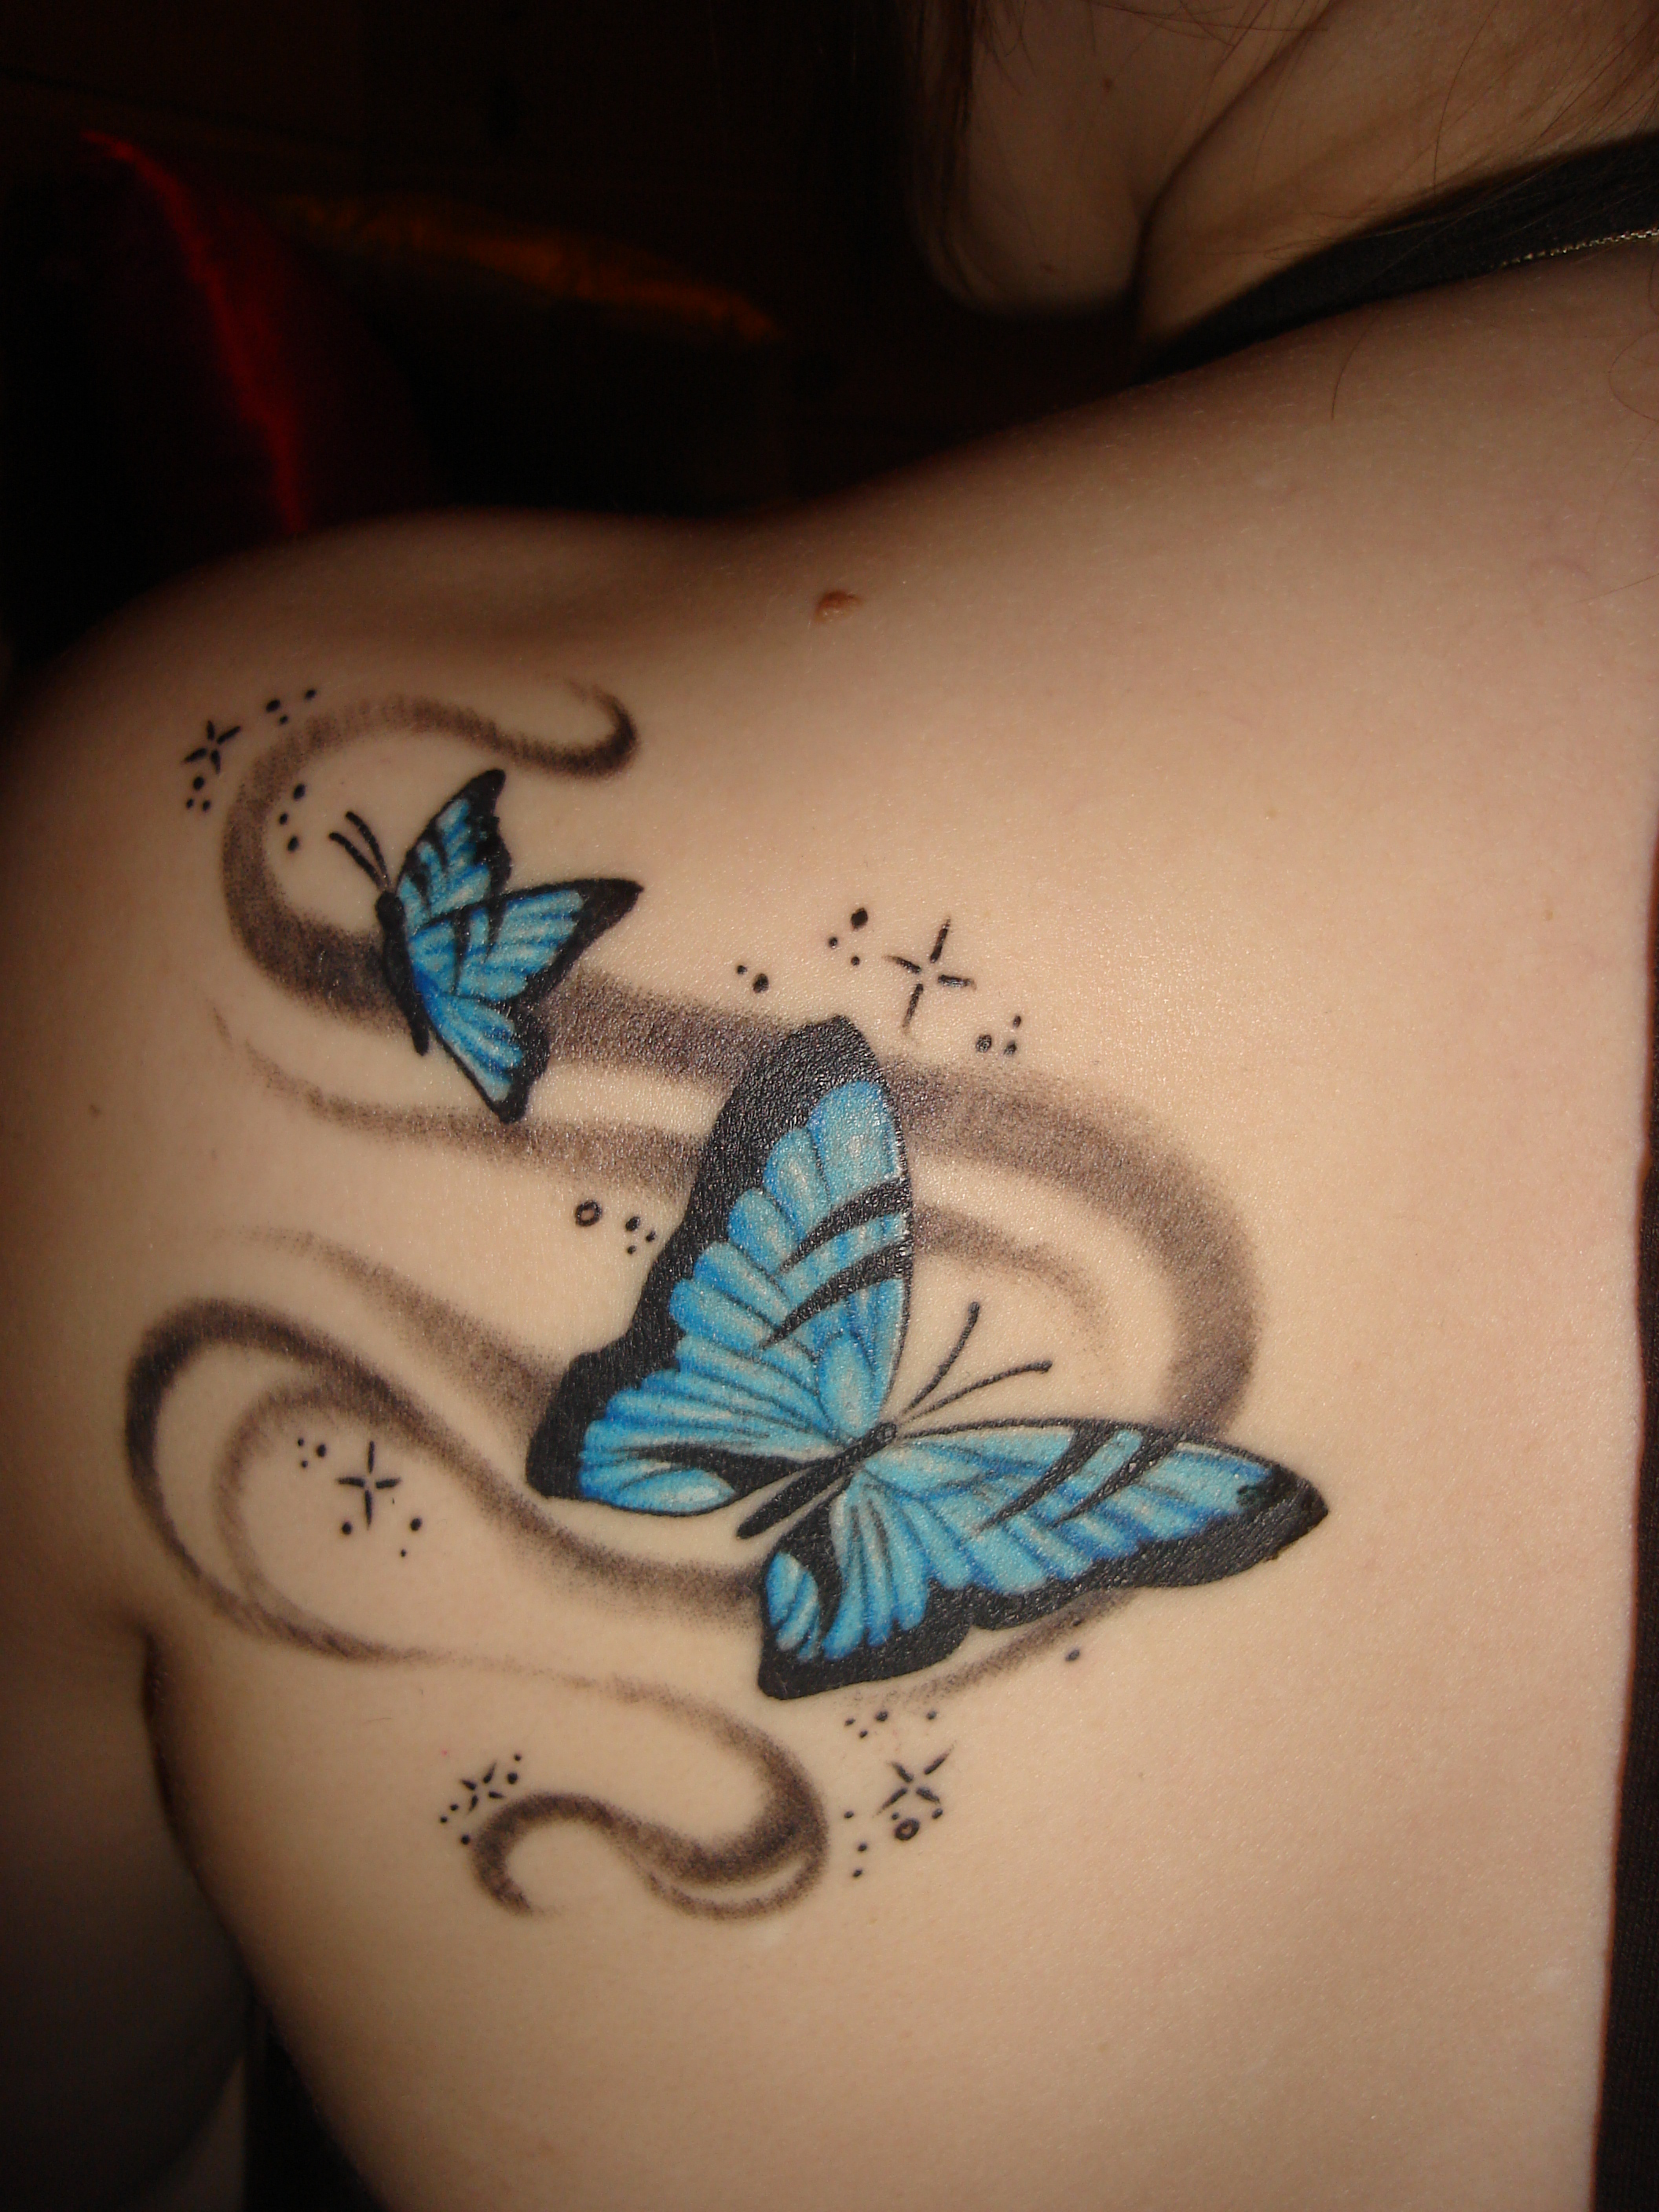 Tattoo Nice Tattoos For Girls Ideas And Designs